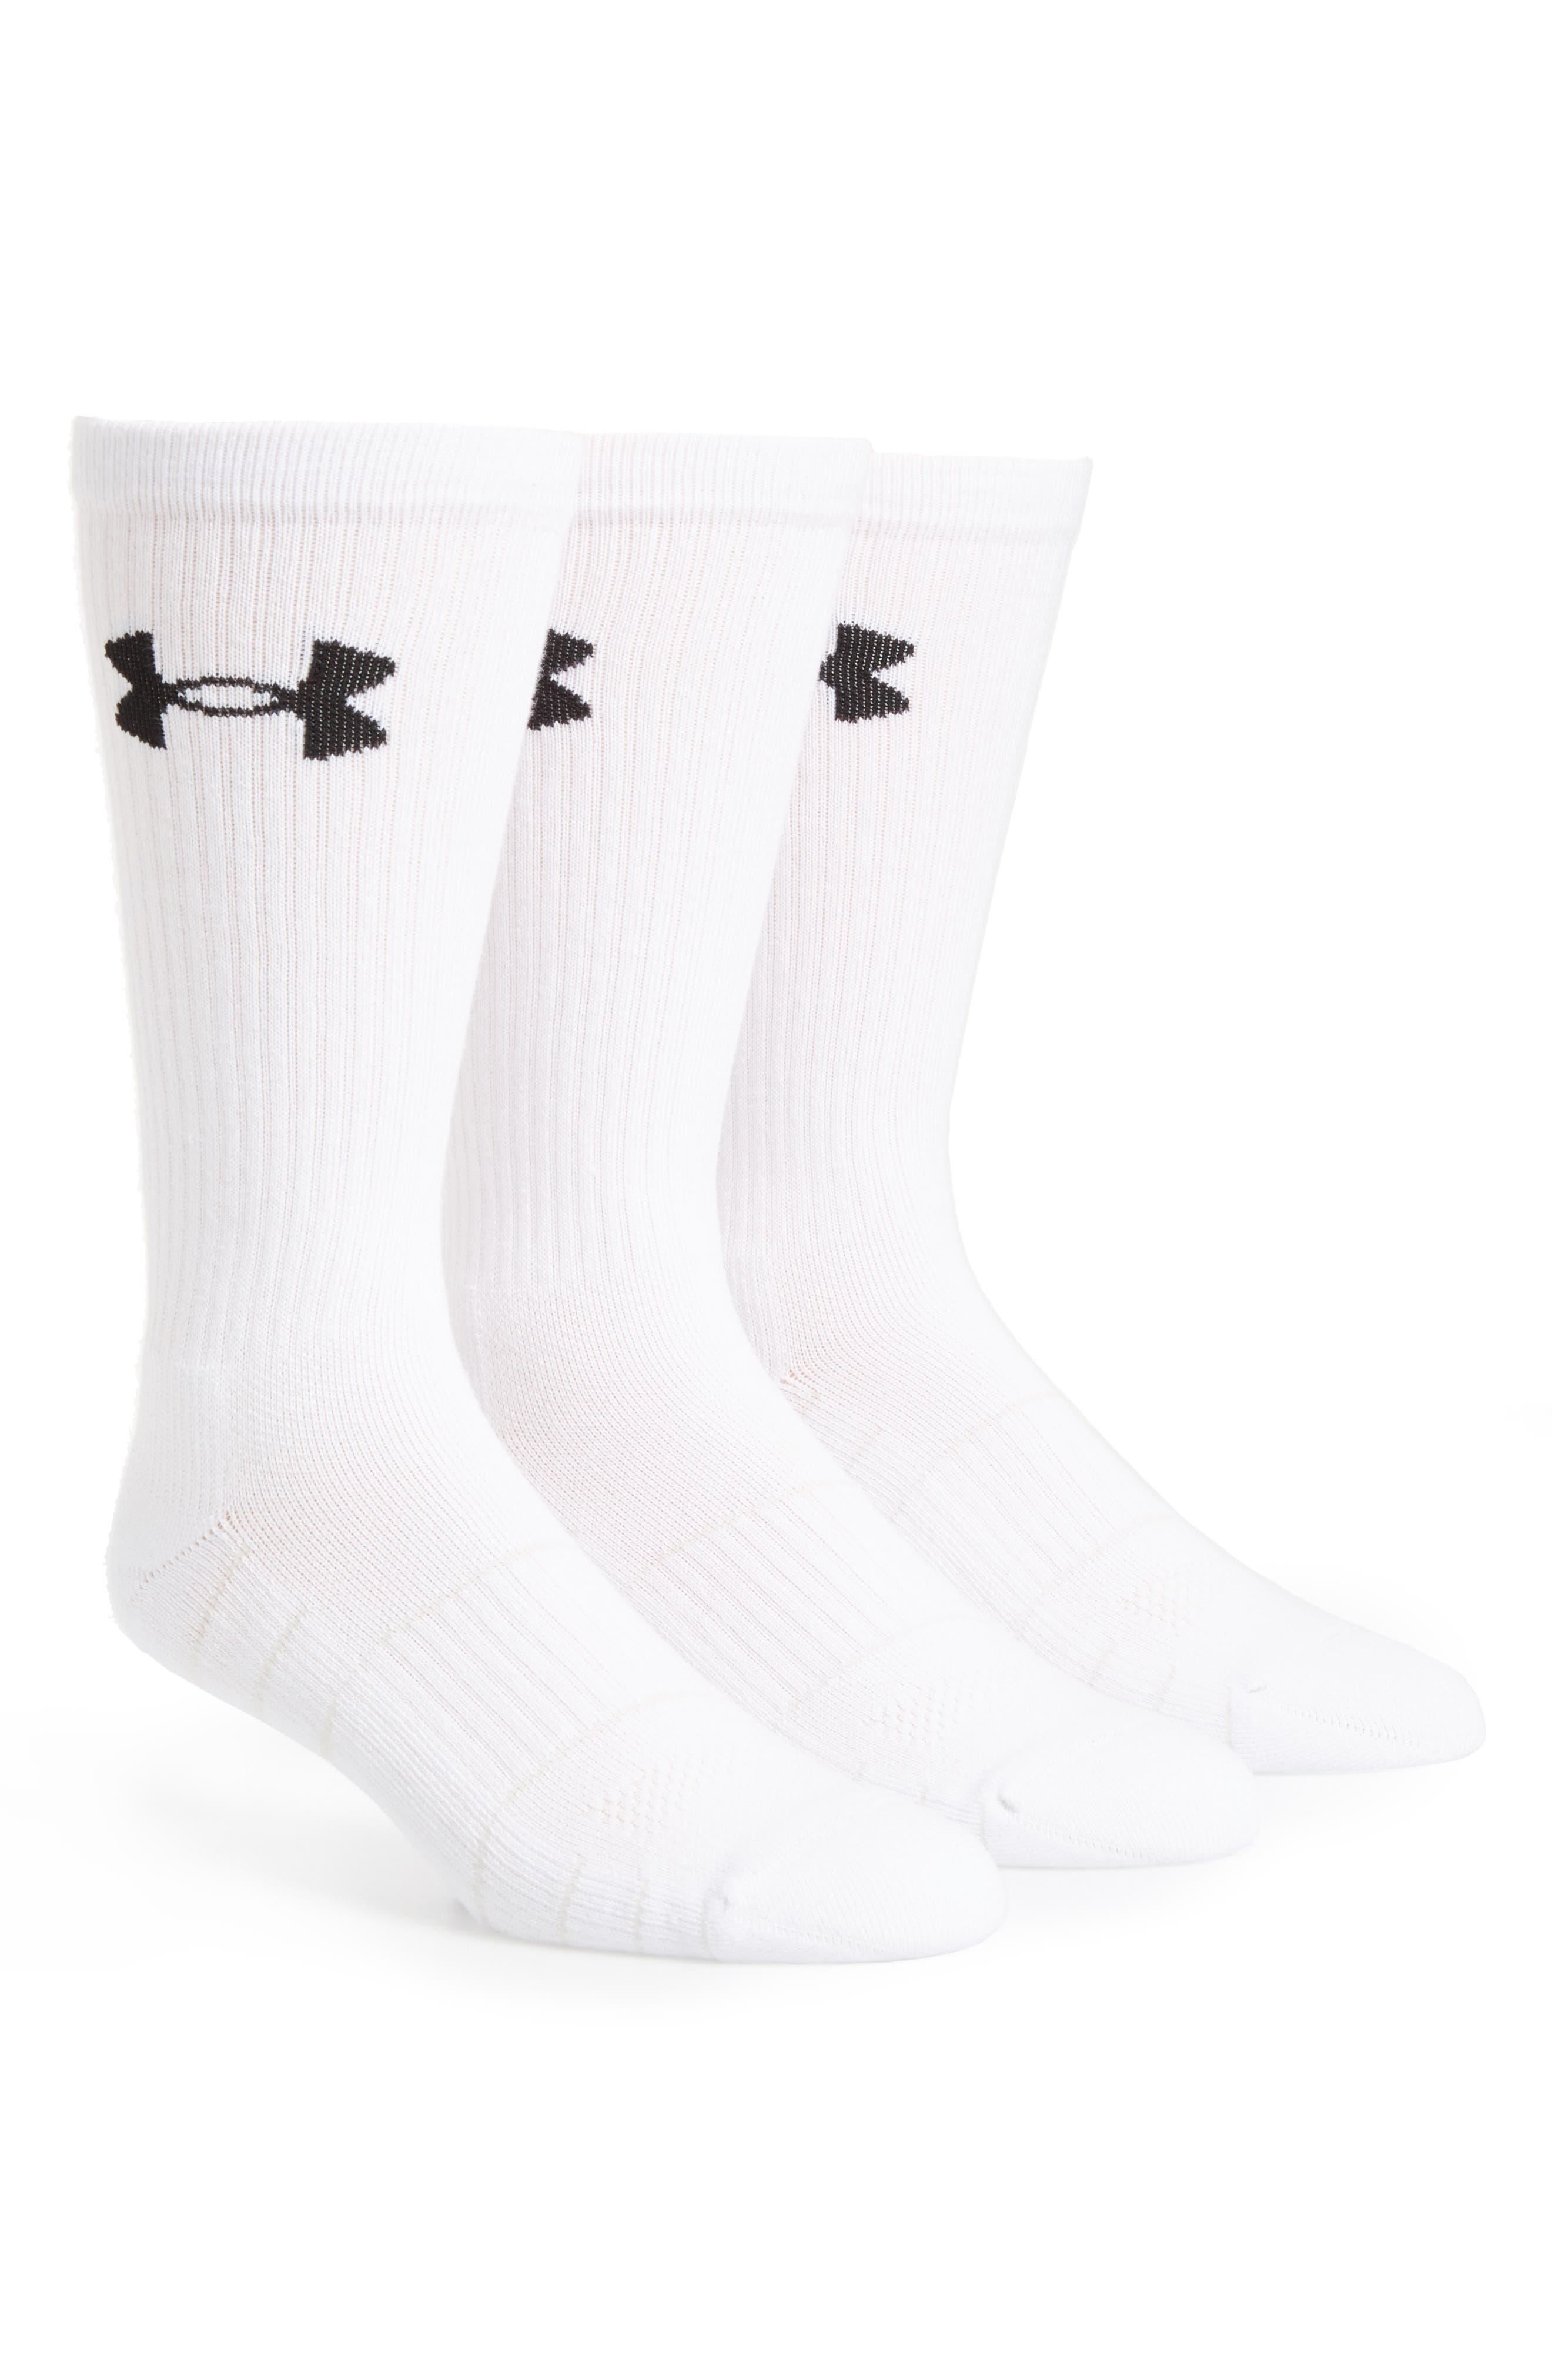 Elevated Performance 3-Pack Socks,                         Main,                         color, White